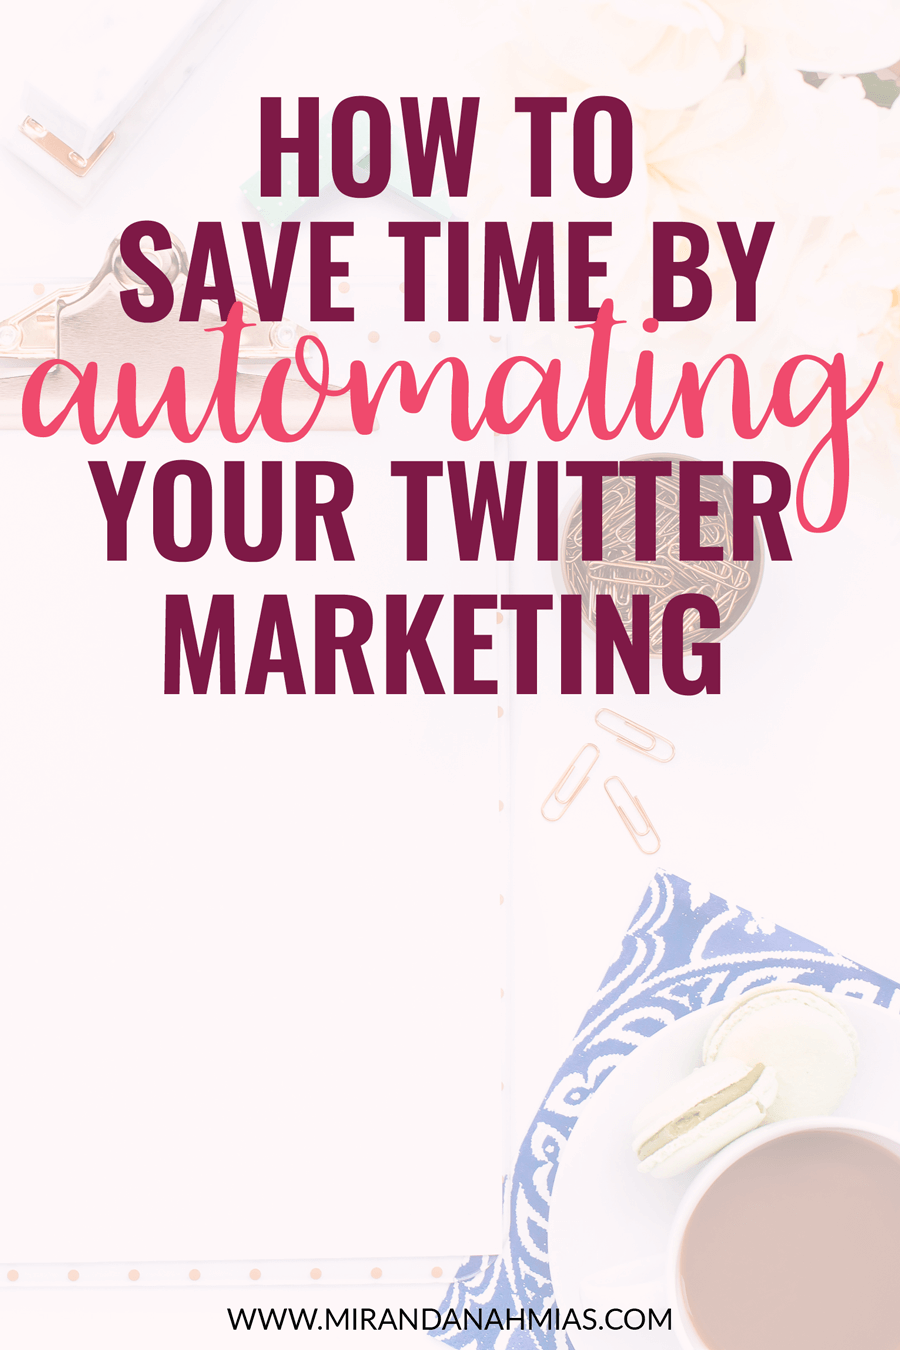 Spending way too much time on Twitter? Or have no idea how to use it correctly? Here's a super in-depth blog post about exactly how to save time by automating your Twitter marketing! | Miranda Nahmias & Co. Digital Marketing + Virtual Assistance